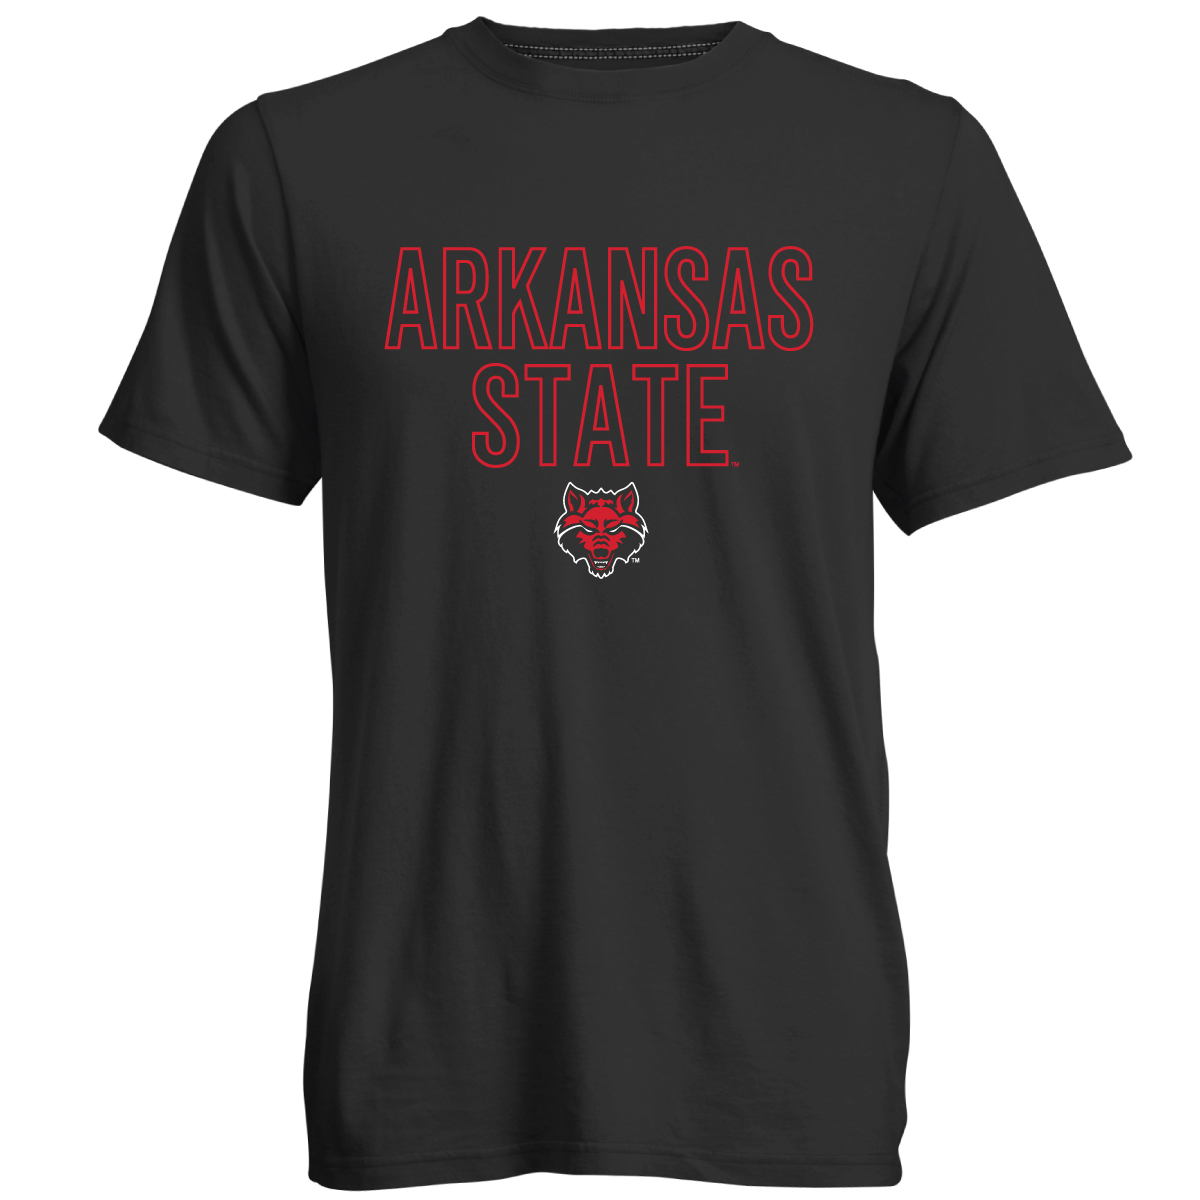 Arkansas State Go To Tee